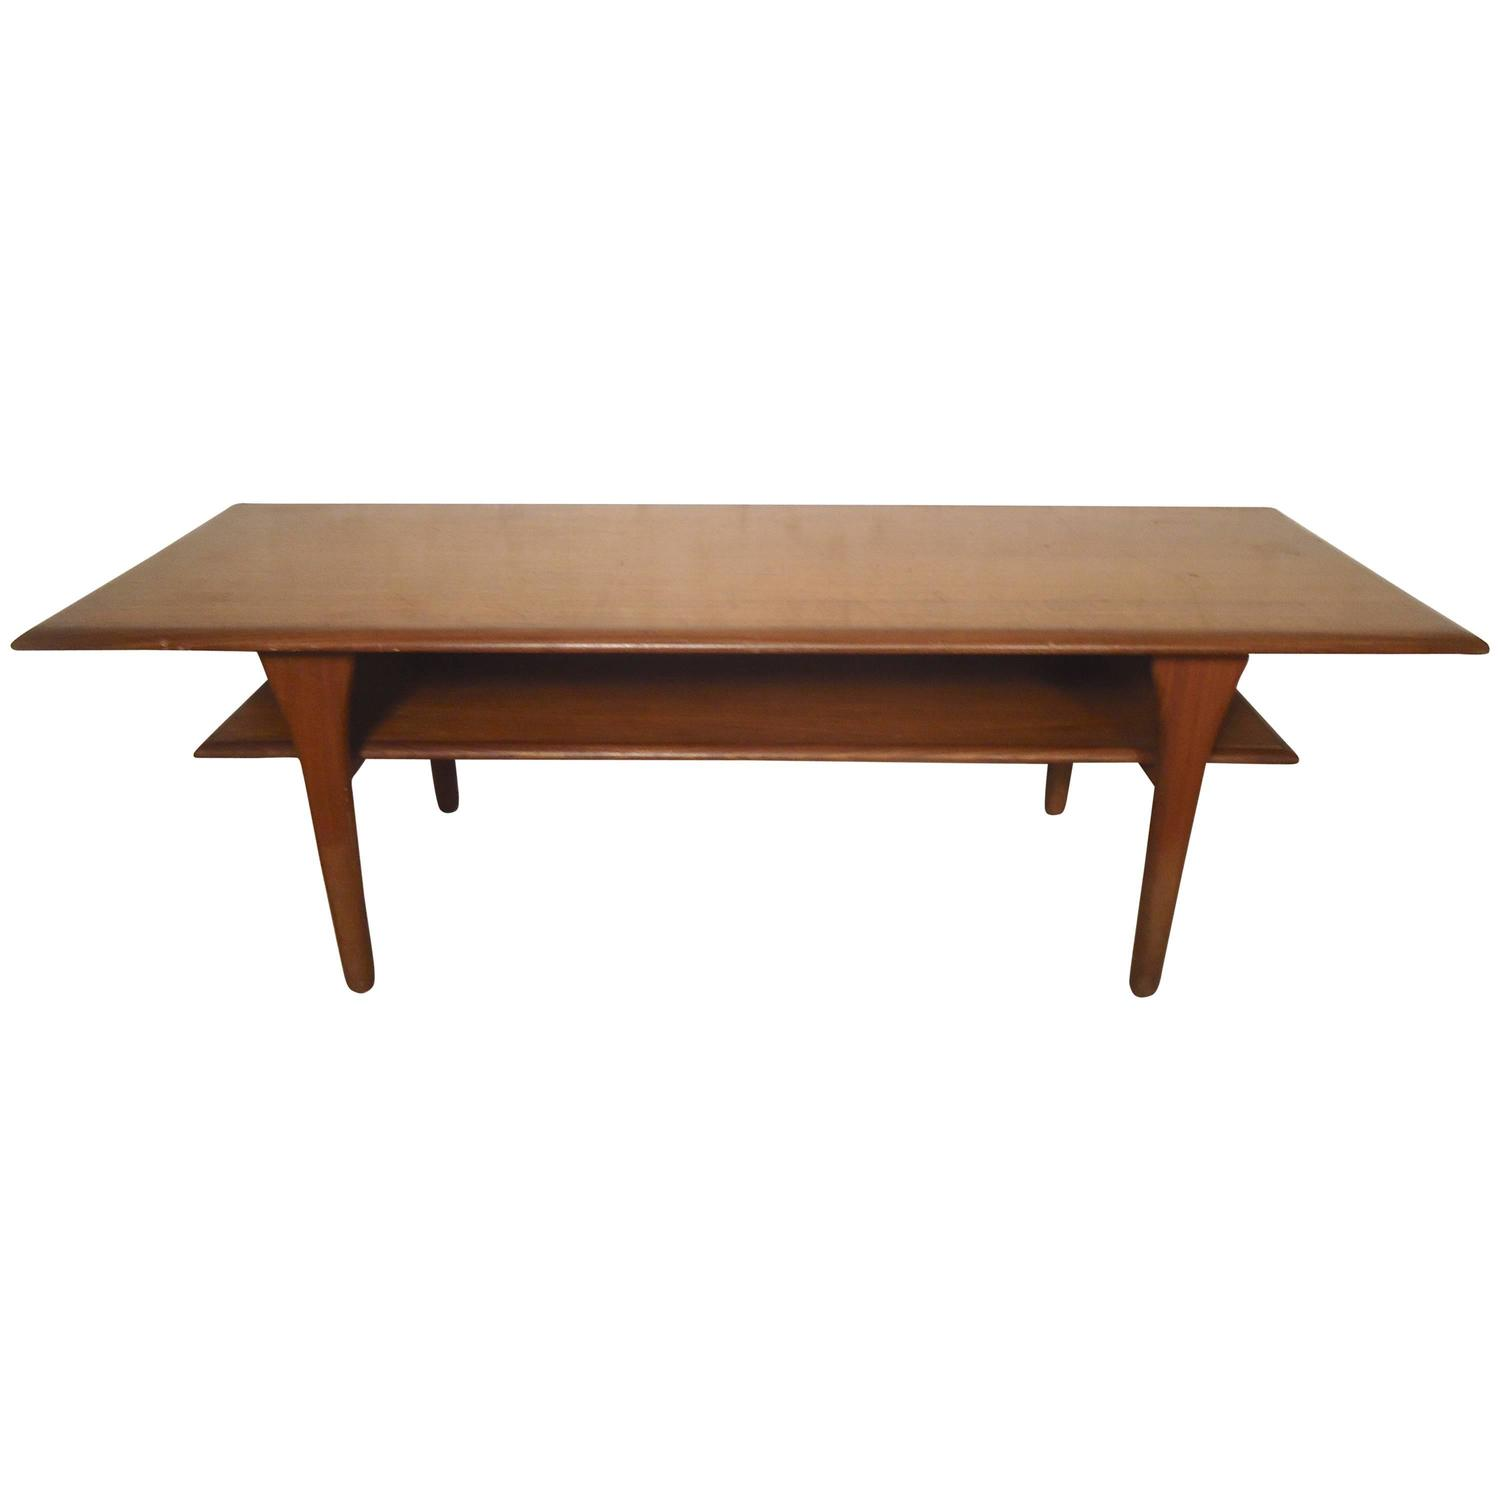 Danish modern coffee table for sale at 1stdibs for Modern coffee table for sale